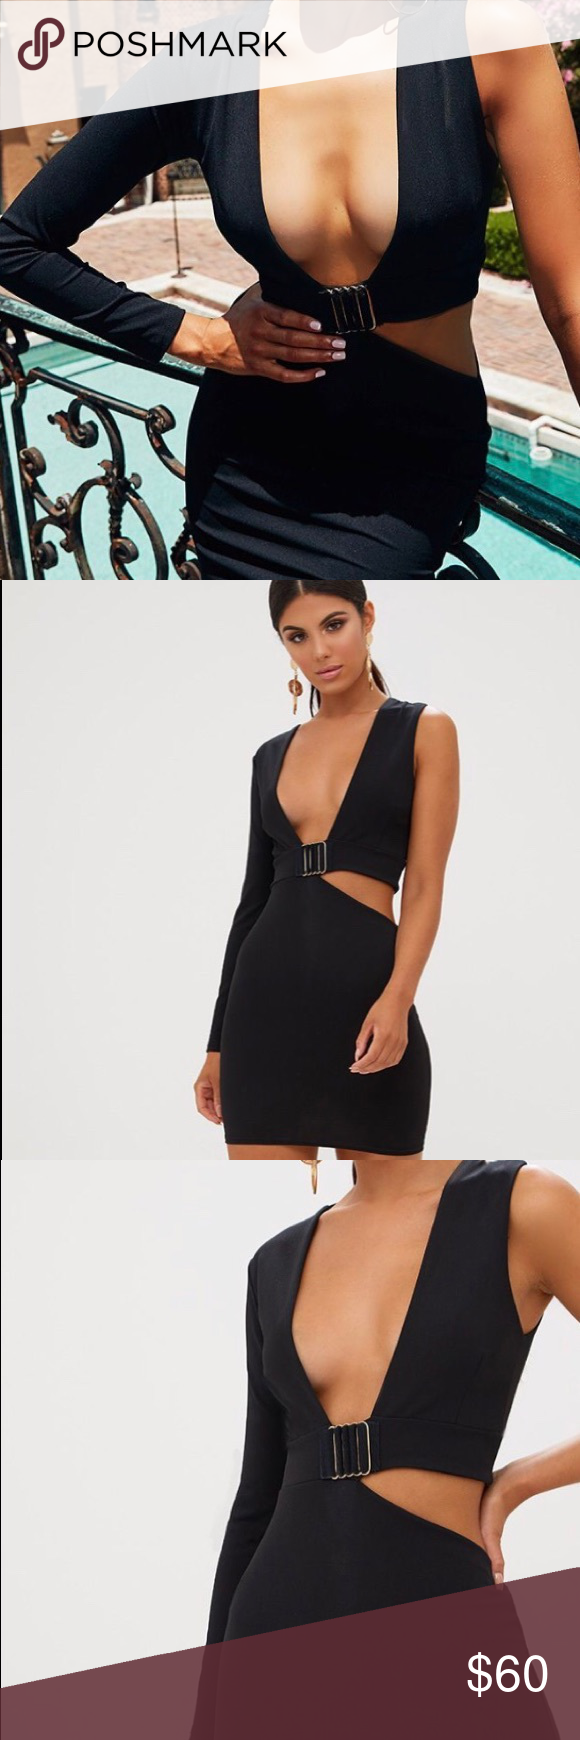 a18d2cc7ed7 Black Cut Out Trim Detail Asymmetric Bodycon Dress BRAND NEW  NEVER WORN  WITH TAGS ✨ Add this asymmetric mini to your LBD collection - featuring  asymmetric ...